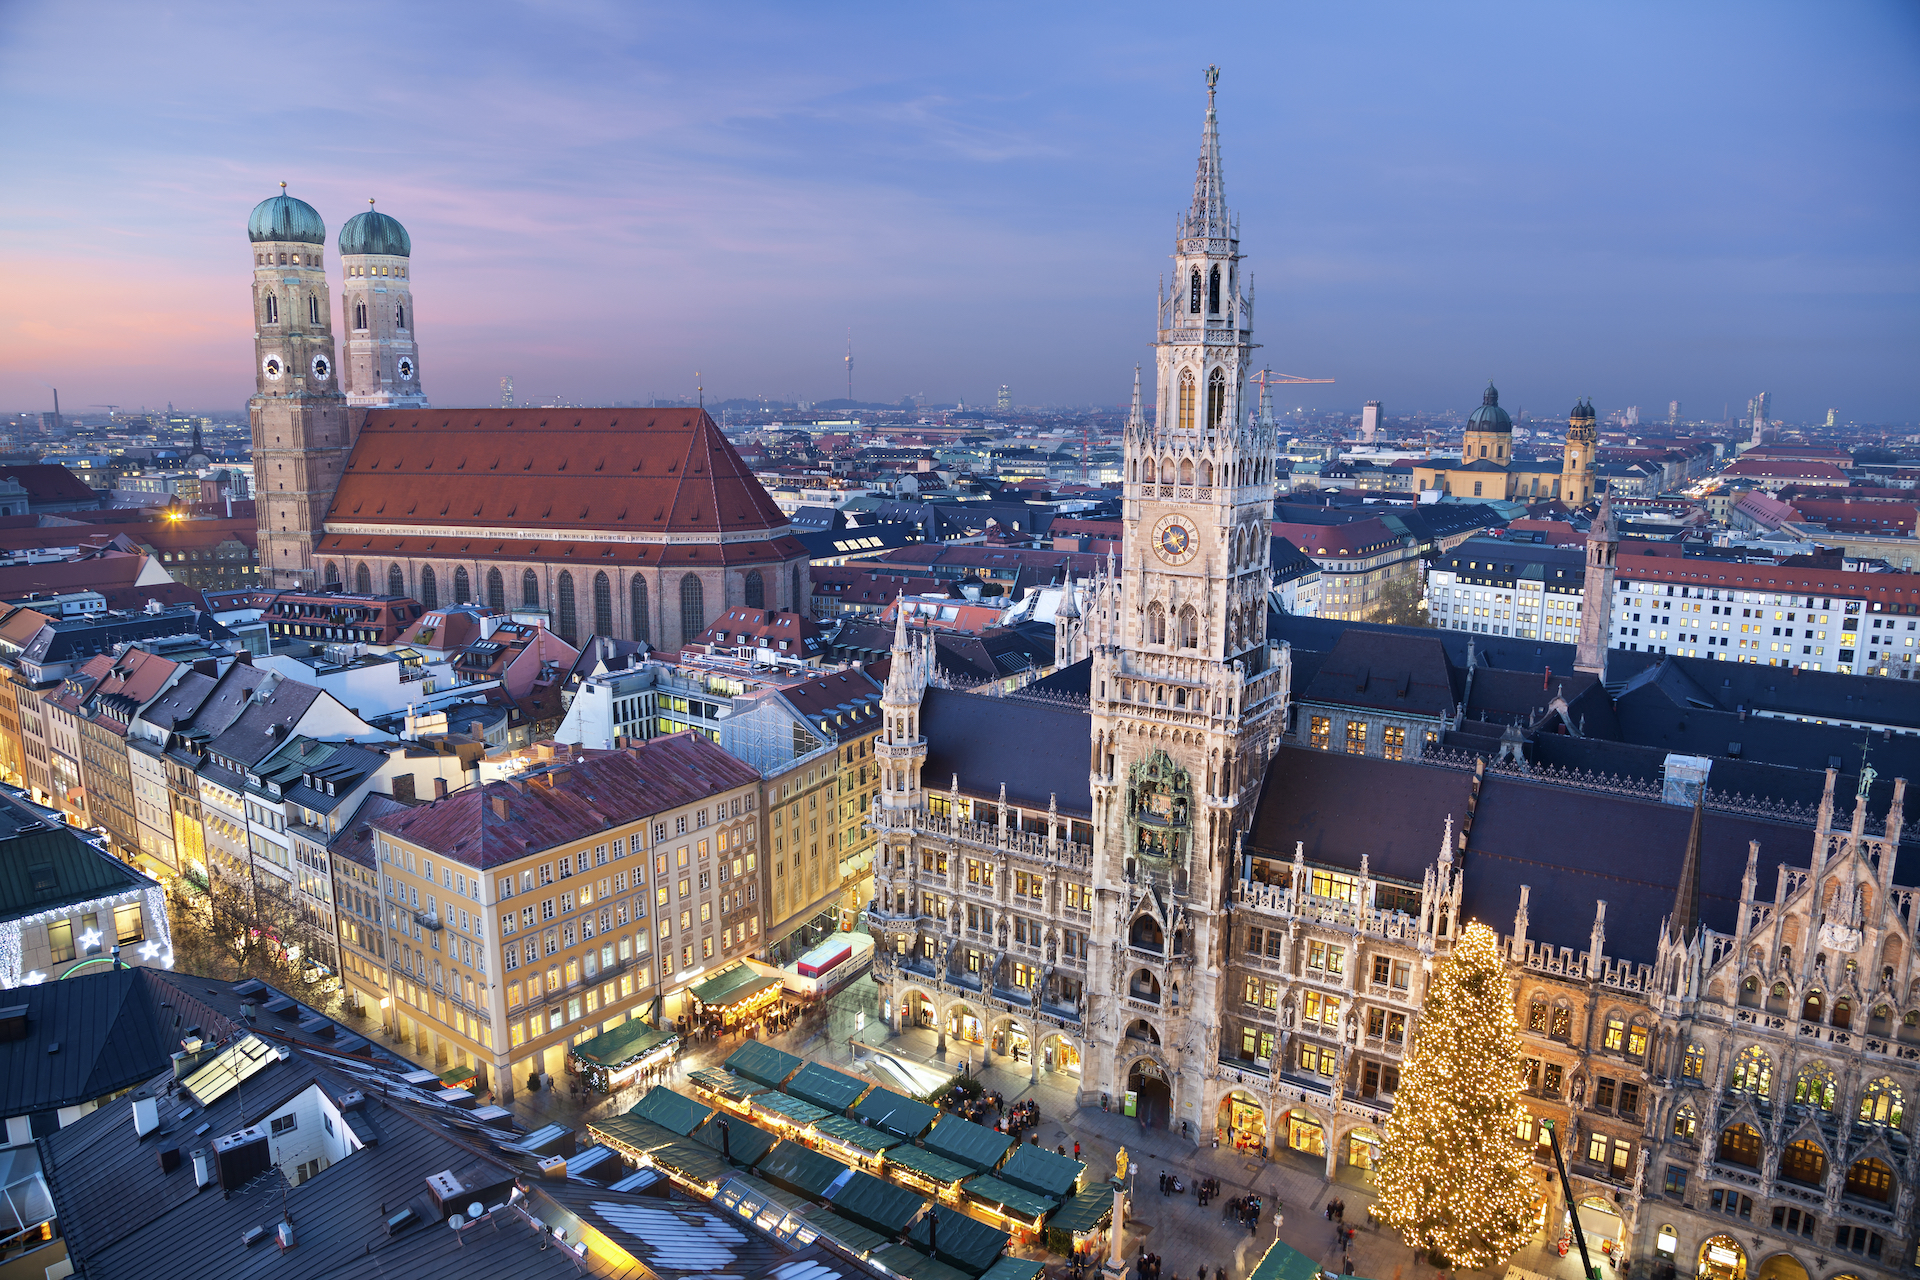 Munich, Germany. Aerial image of Munich, Germany with Christmas Market and Christmas decoration during sunset.